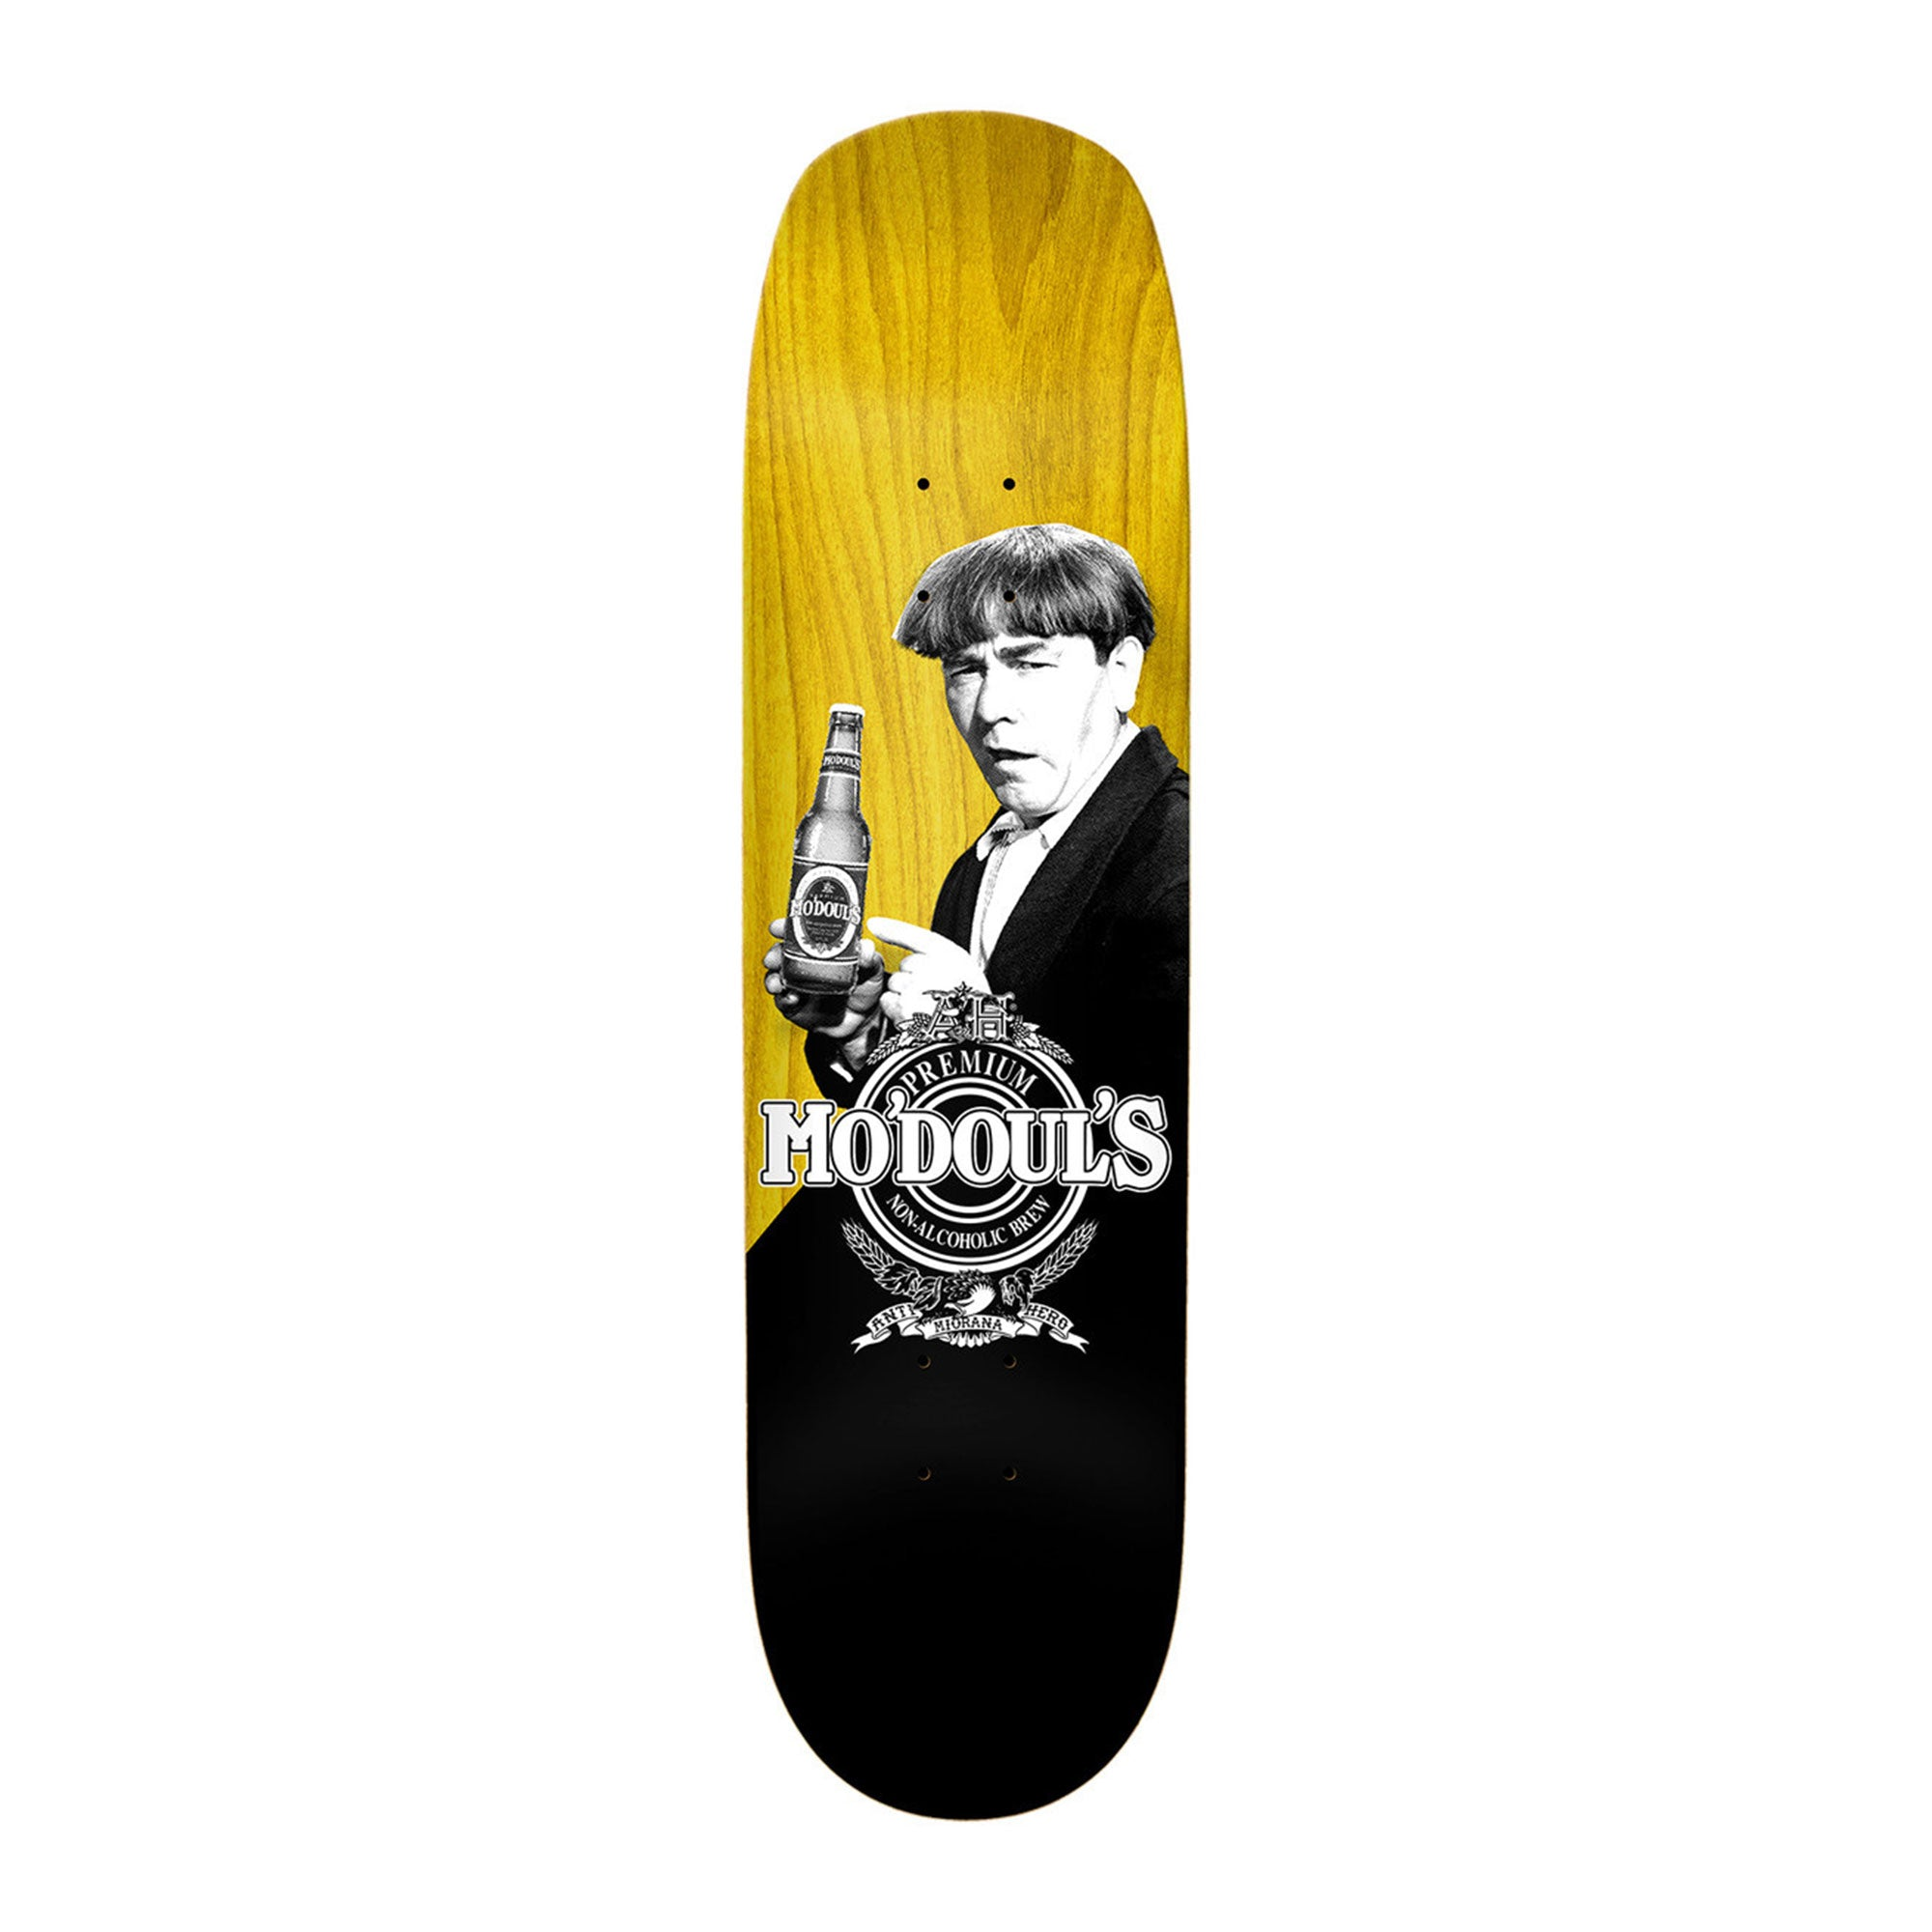 Anti-Hero Modouls Miorana Deck Product Photo #1